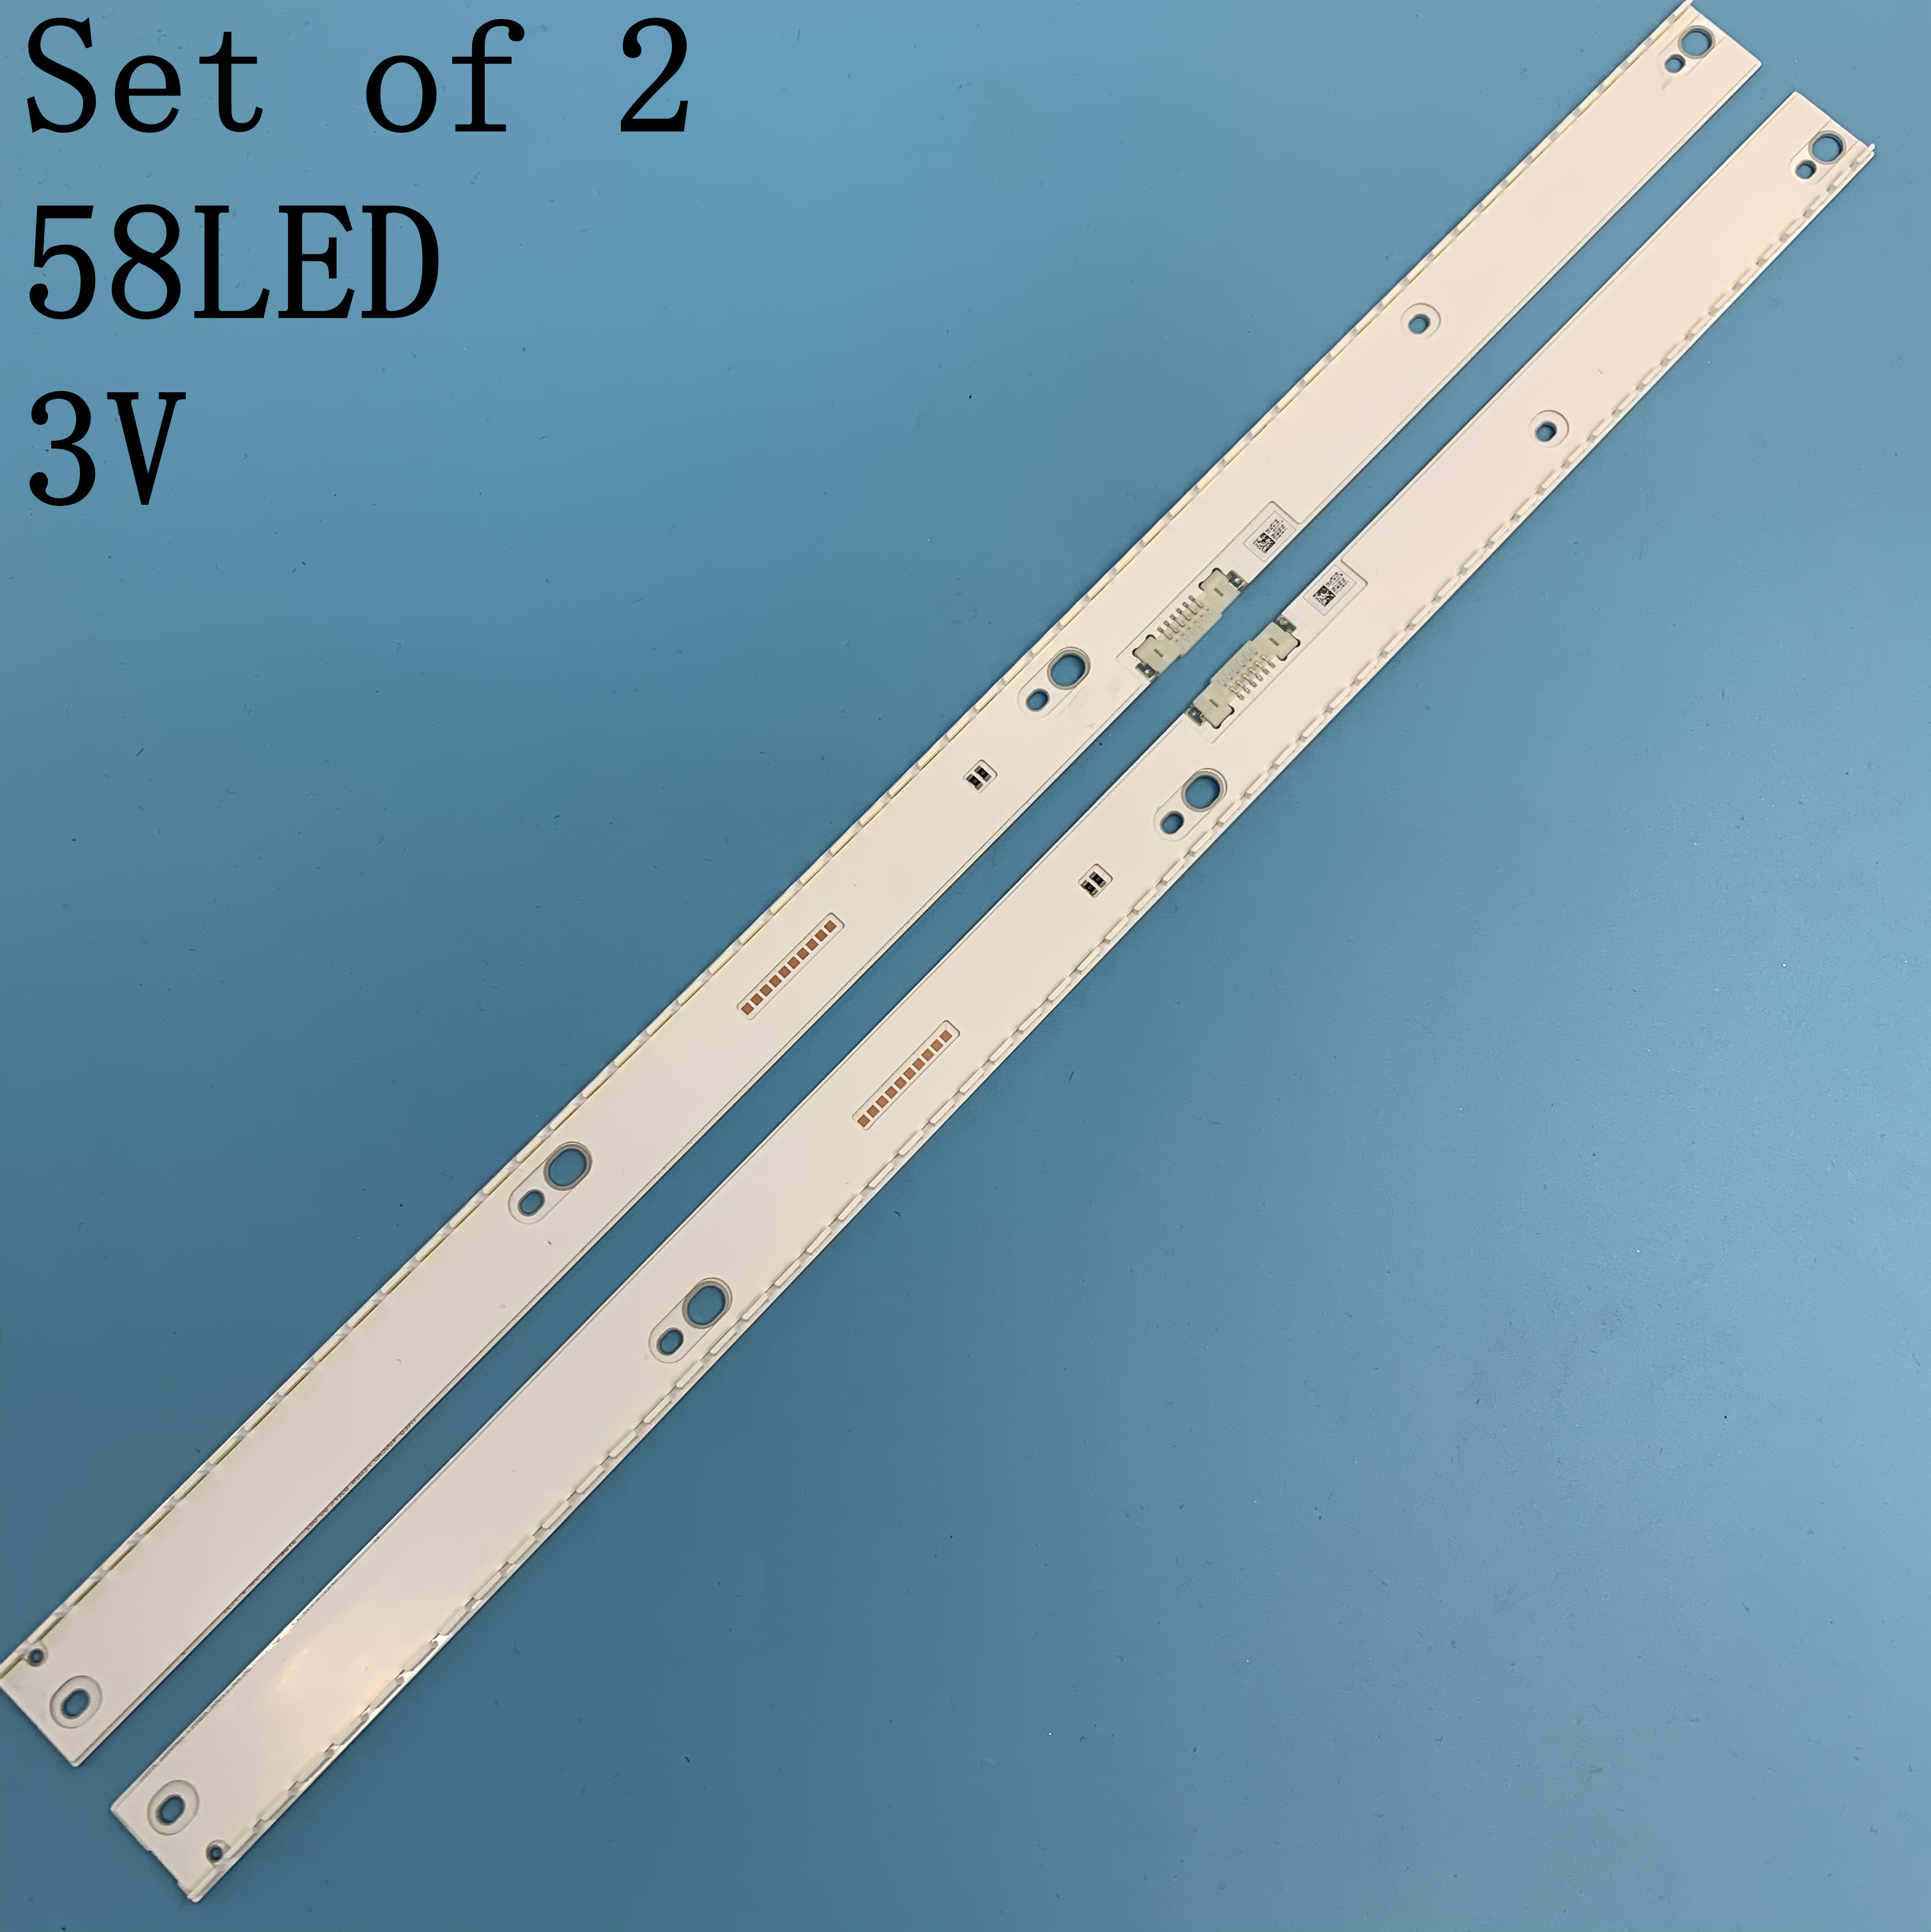 LED Backlight Strip BN96-39673A BN96-39674A For Samsung 49'' TV UE49MU6470 UE49MU6400 UE49KU6510 UE49KU6500 UN49MU7100